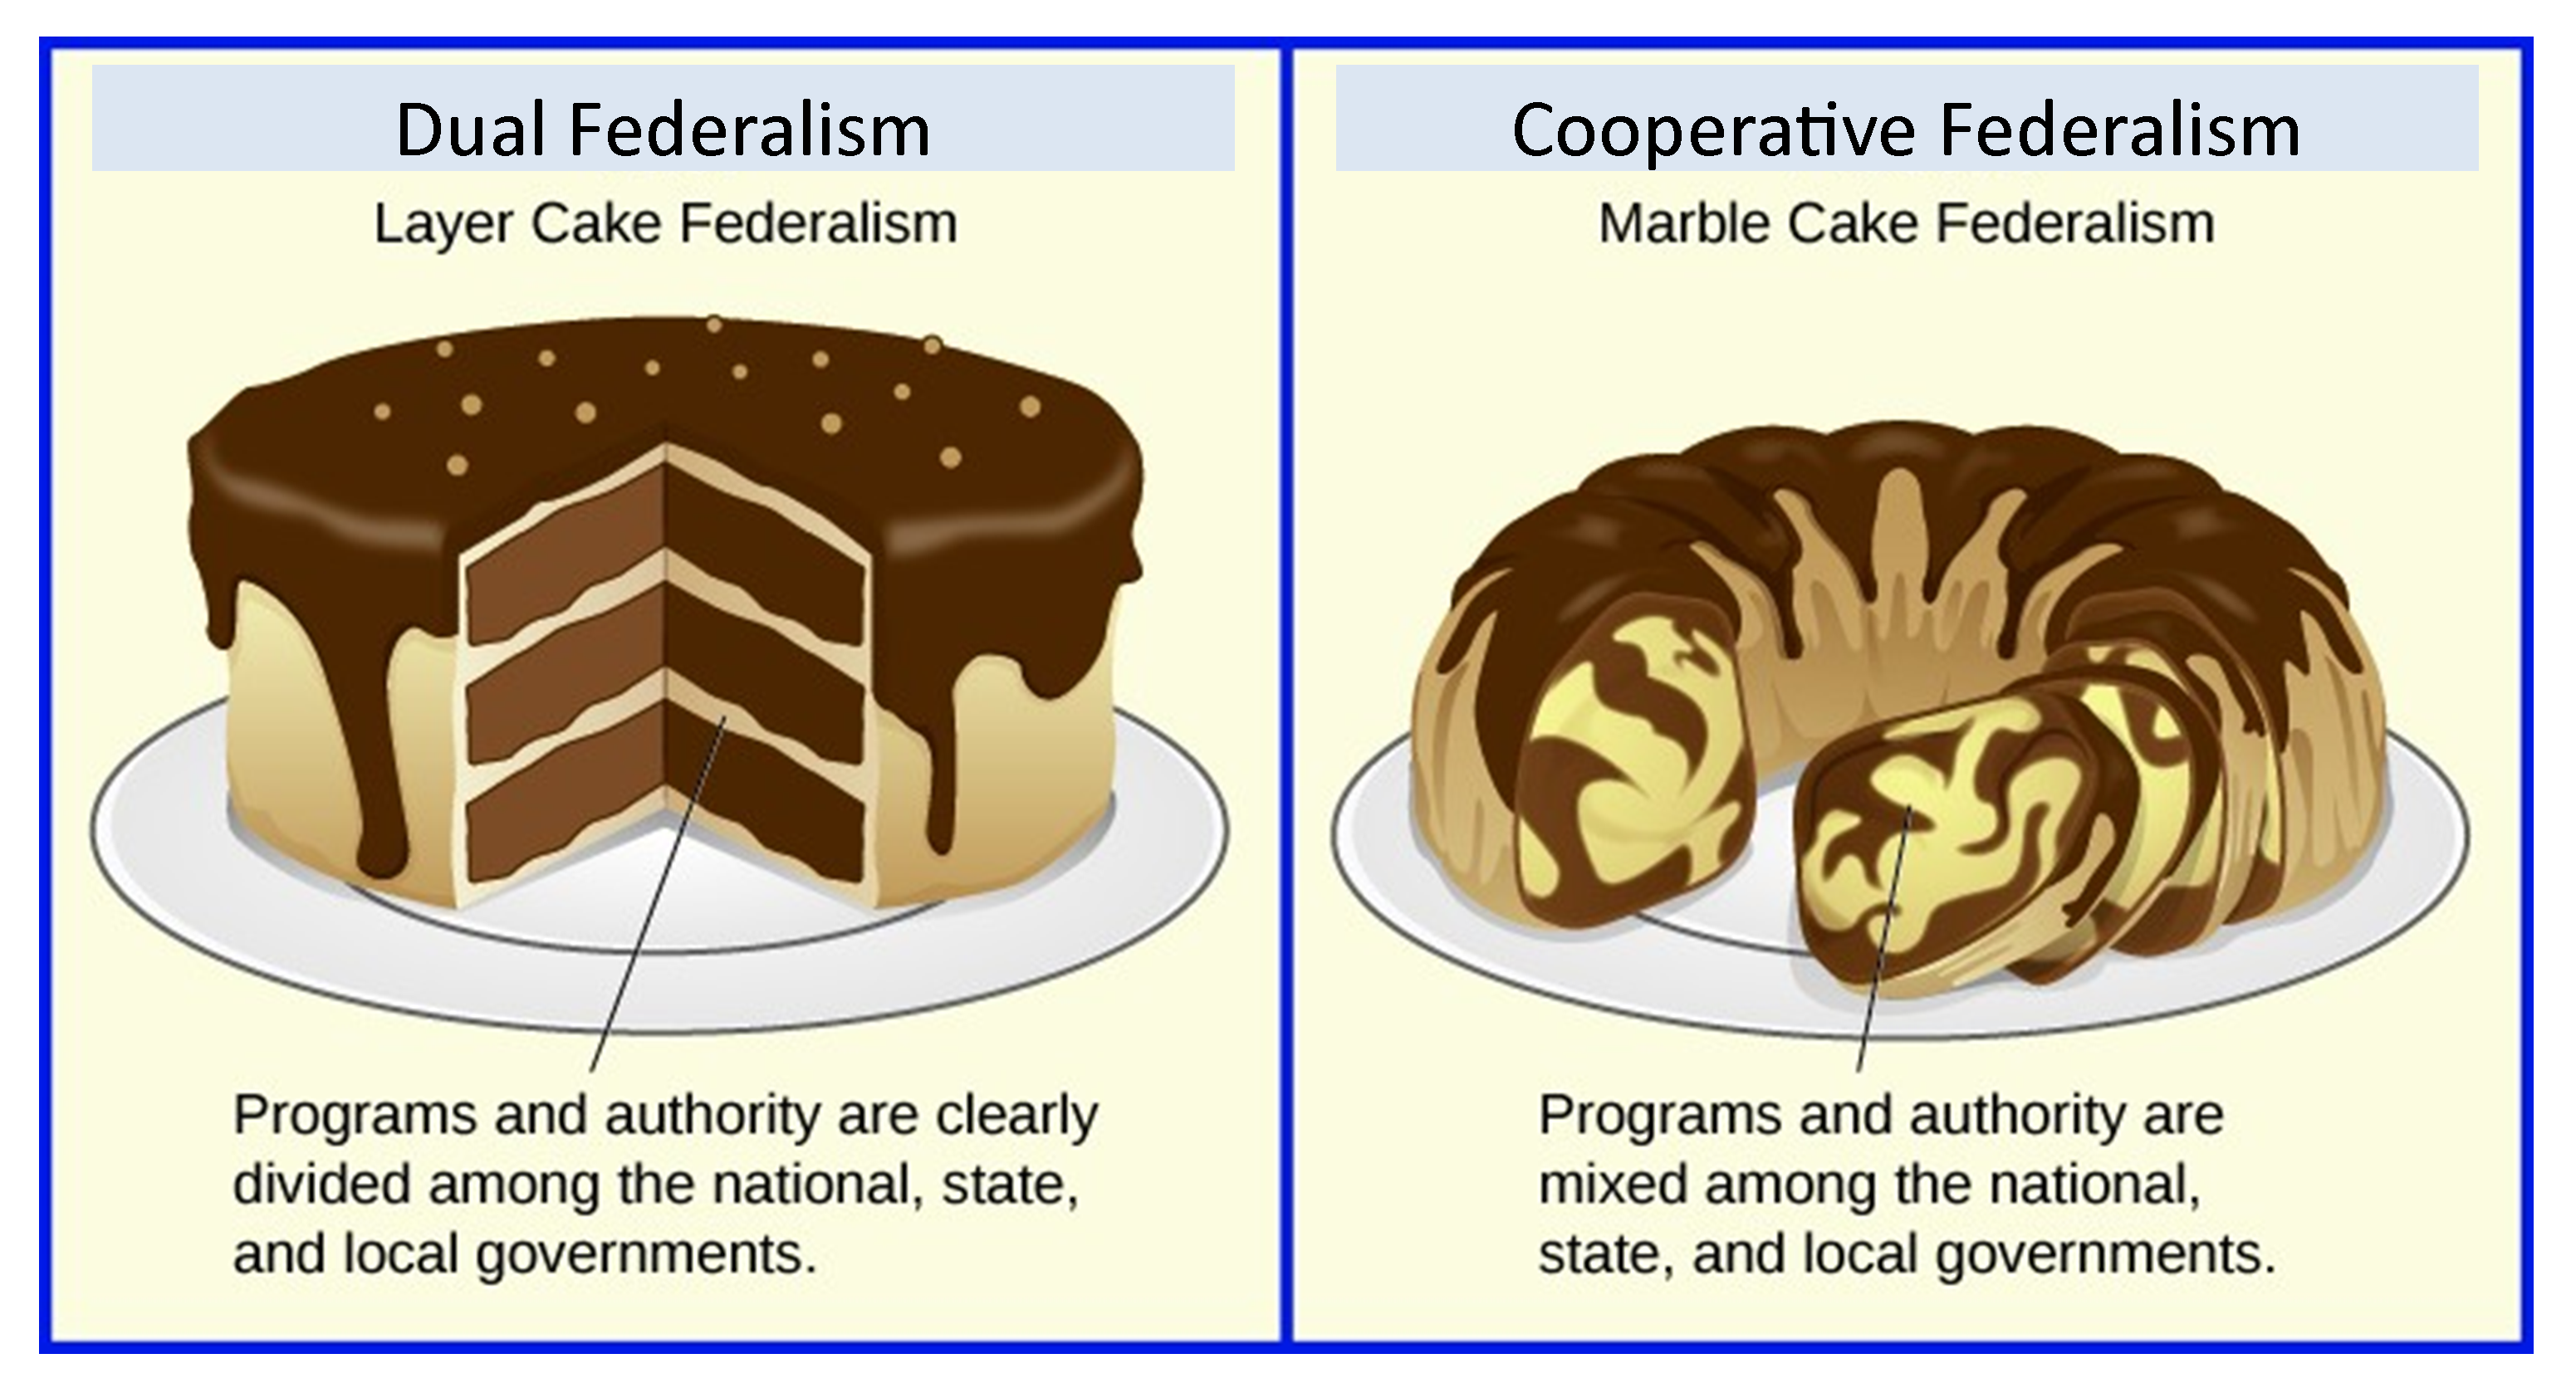 Diagram showing two cakes, one with layers representing dual federalism and one marbled to represent cooperative federalism.